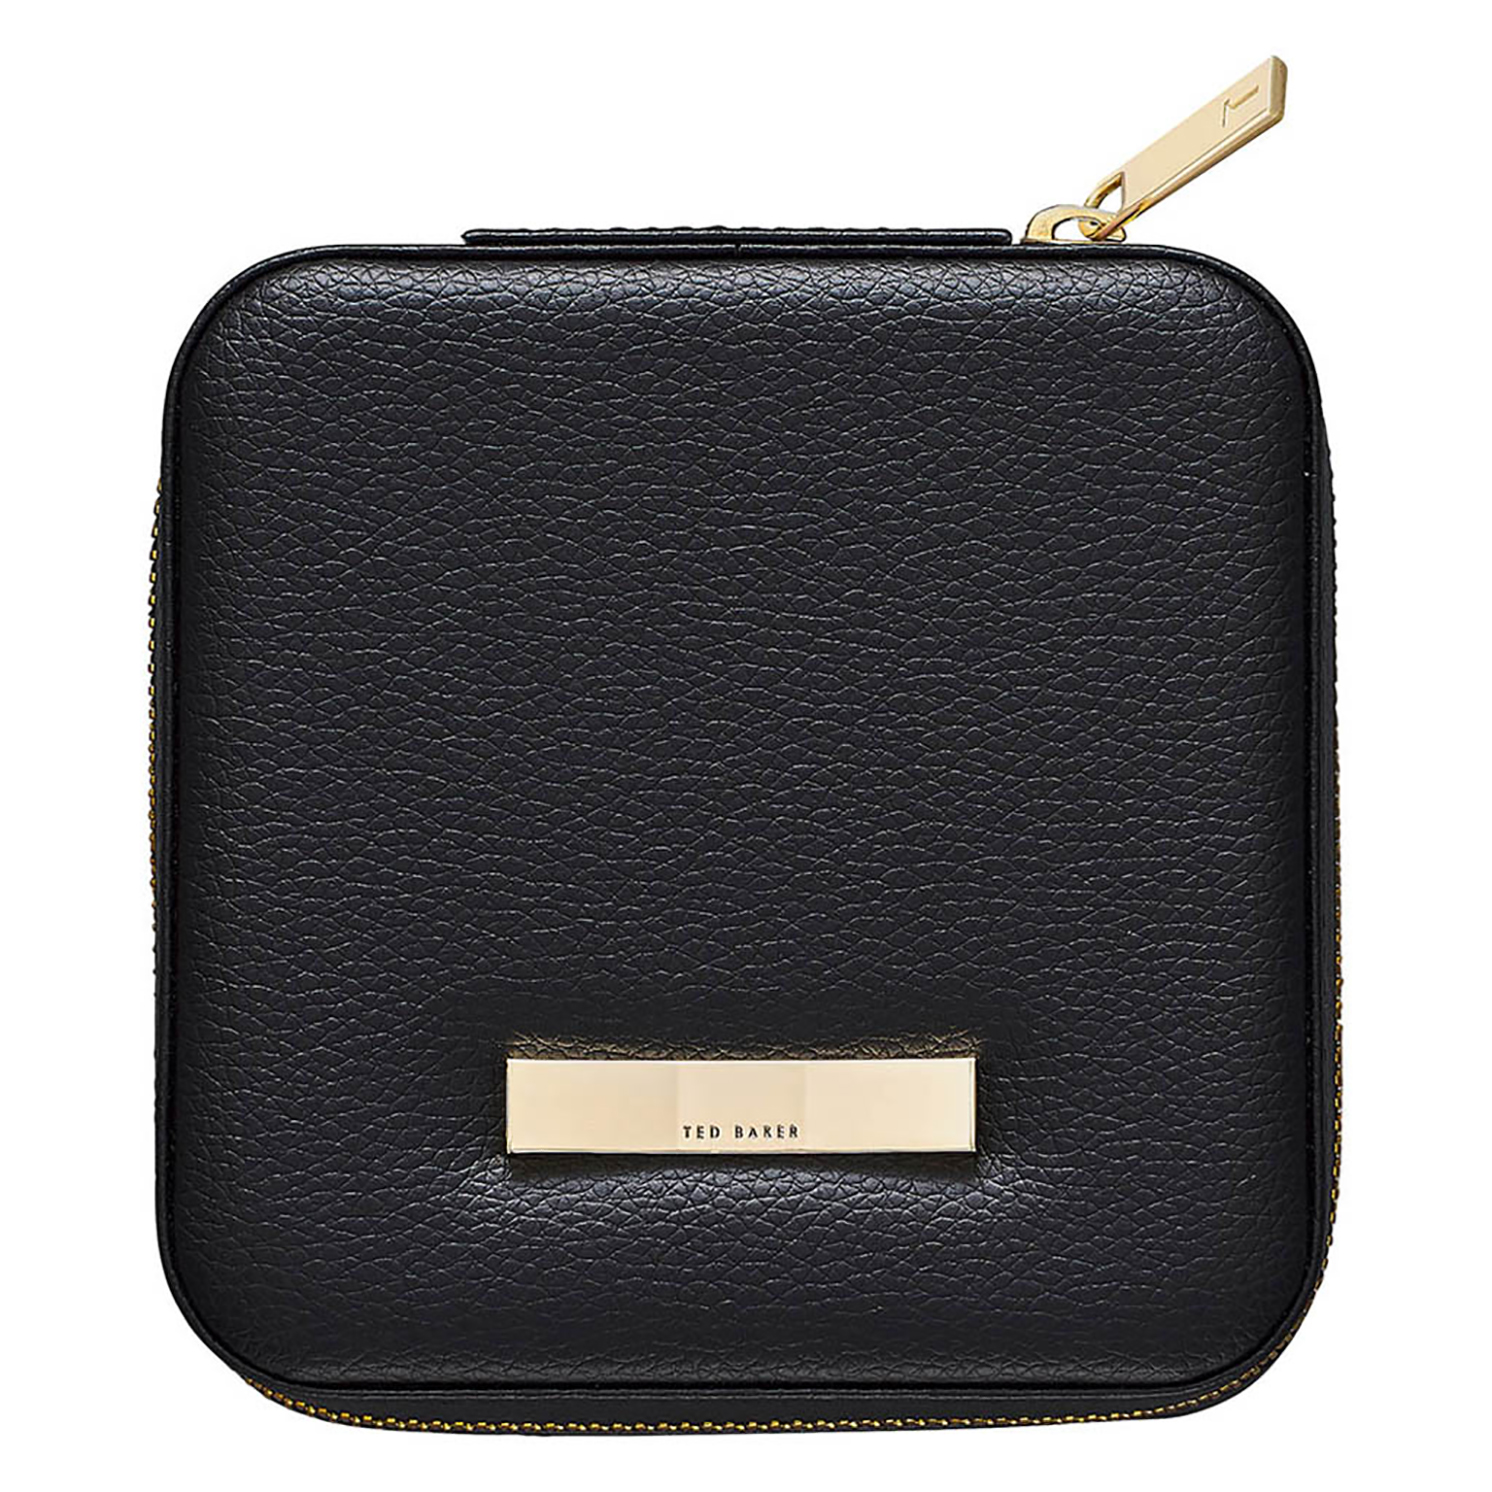 Ted Baker – Black Zipped Jewellery Storage Case with Gold Ted Baker Branded Bow